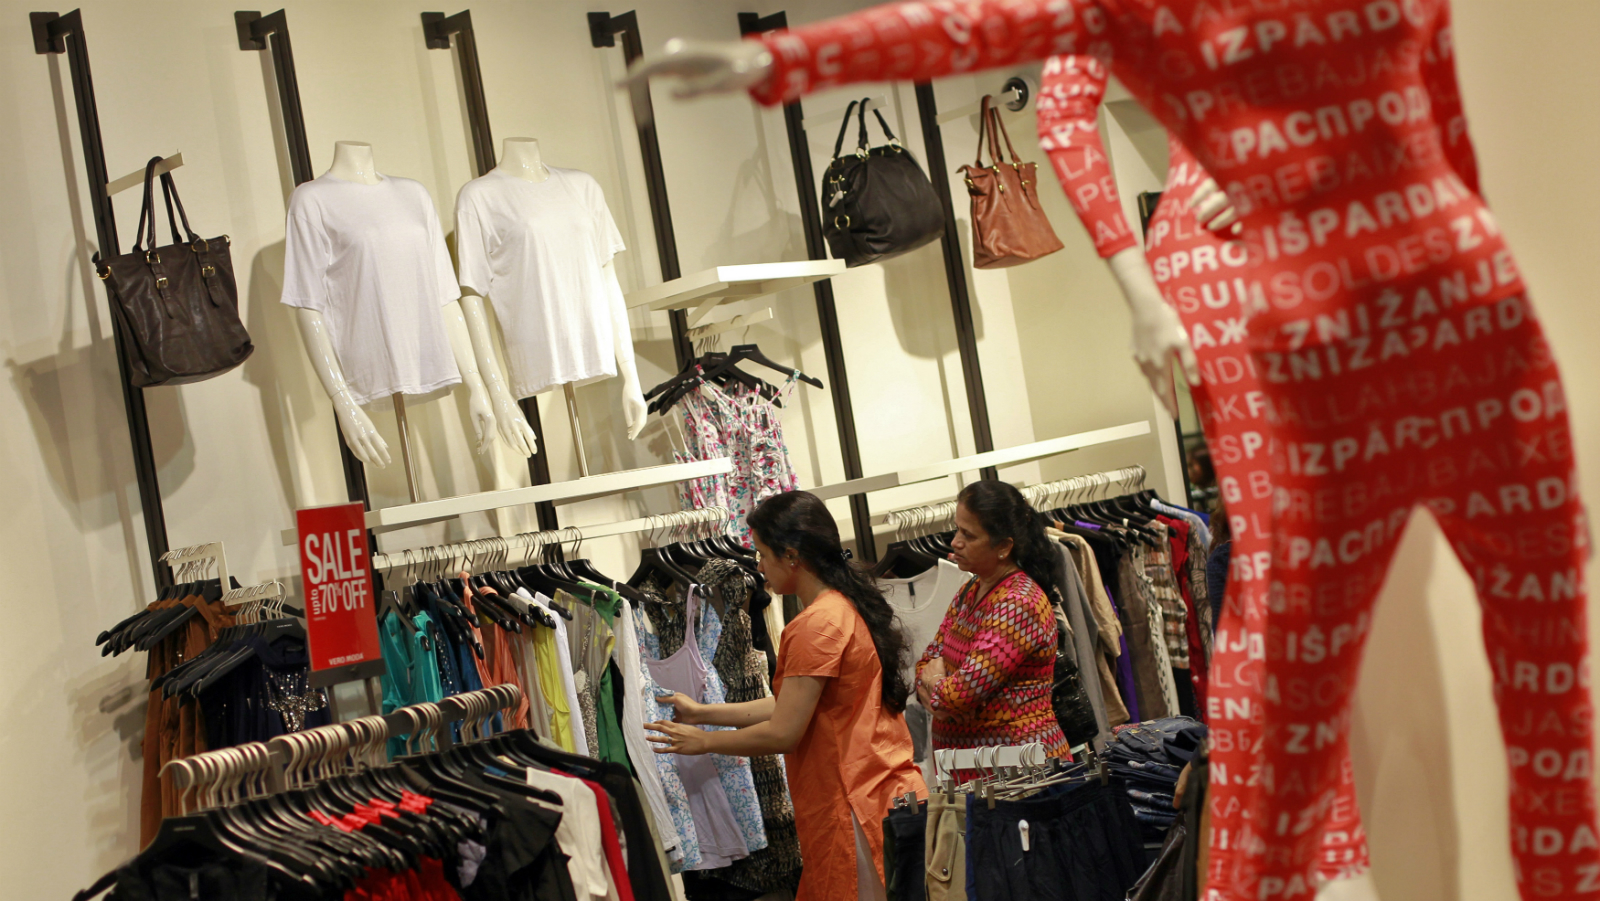 People shop for clothes during a seasonal sale at a store inside a shopping mall in Mumbai July 14, 2012.